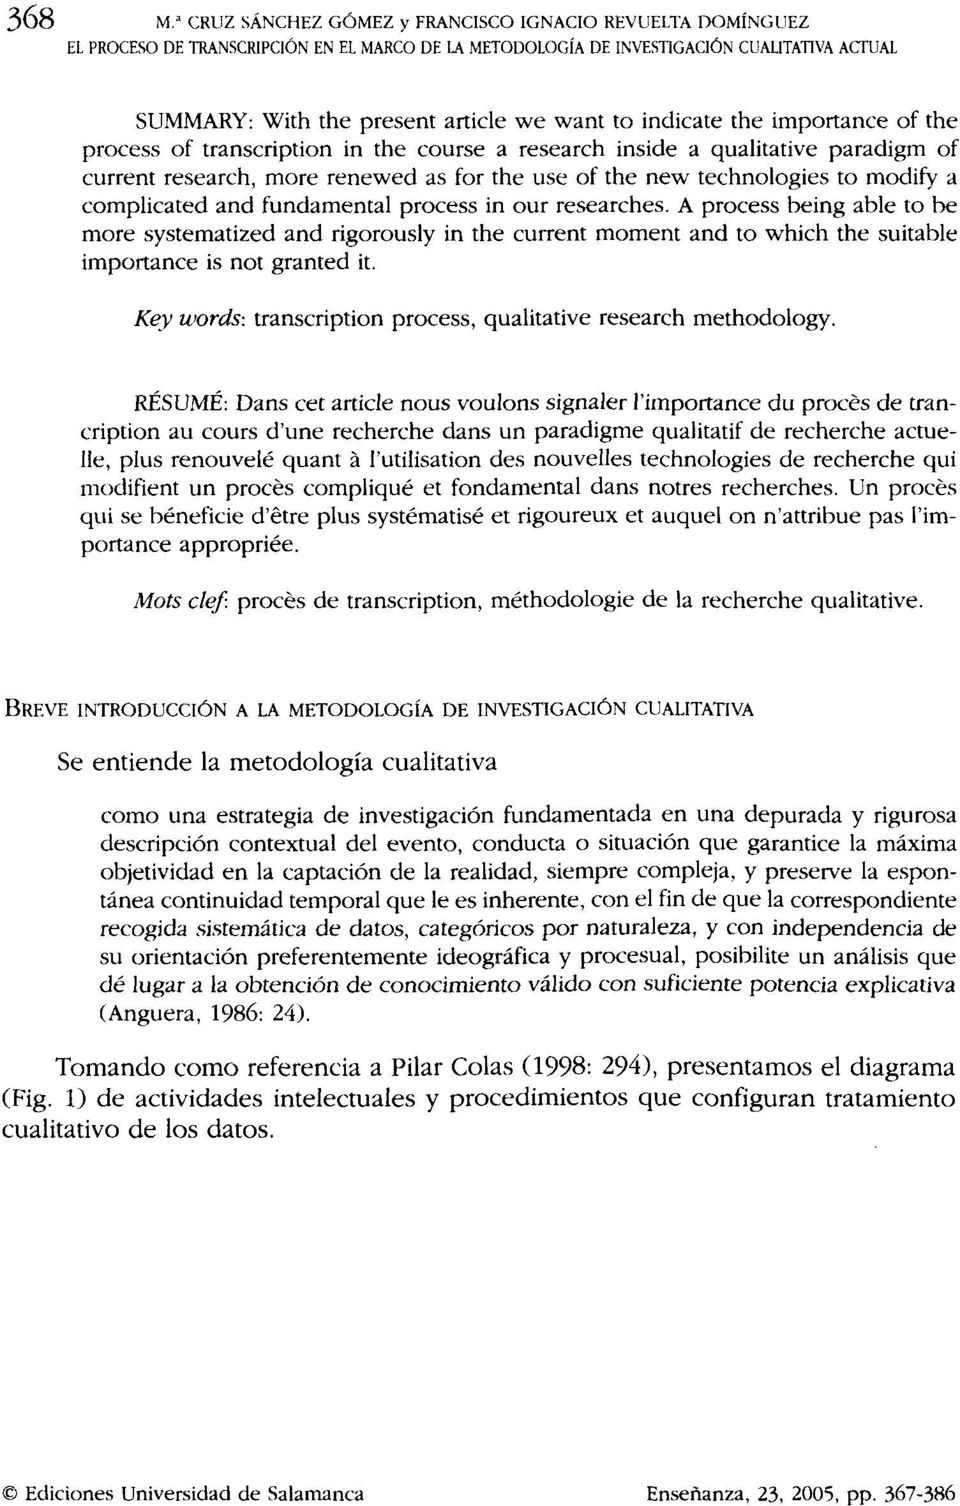 indícate the importance of the process of transcription in the course a research inside a qualitatíve paradígm of current research, more renewed as for the use of the new technologies to modify a